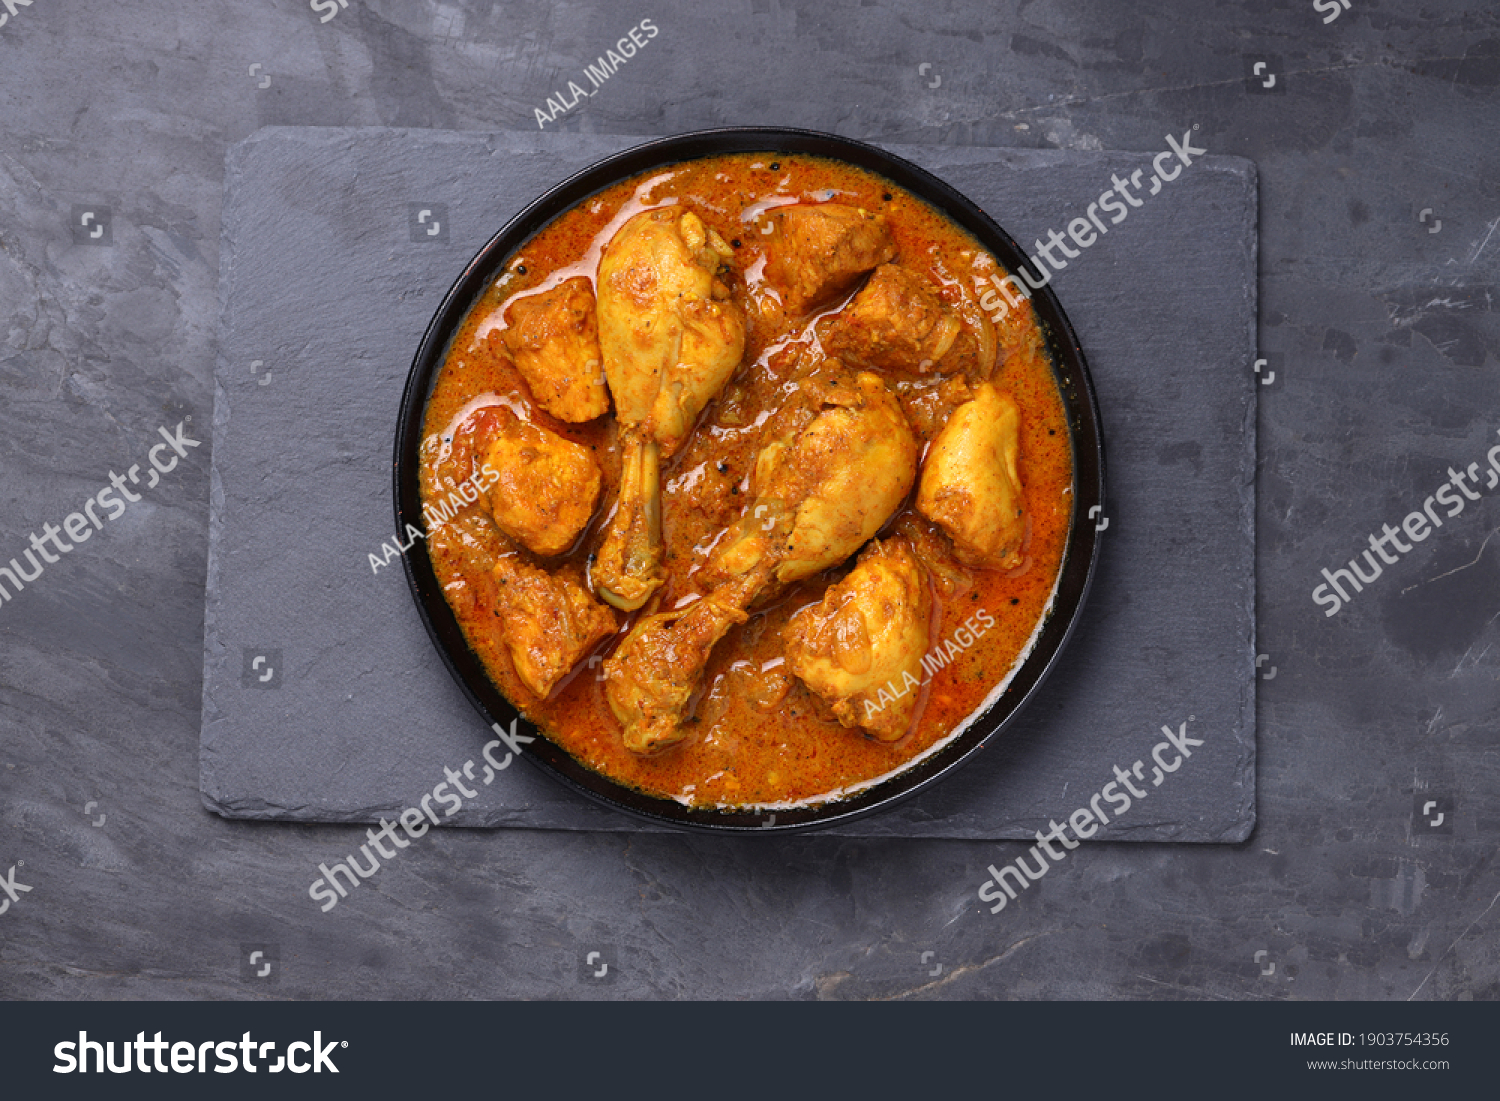 Chicken curry or masala,Kerala style chicken curry using fried coconut in traditional way and arranged in a black  ceramic vessel which is placed on a graphite sheet with grey background,isolated. #1903754356